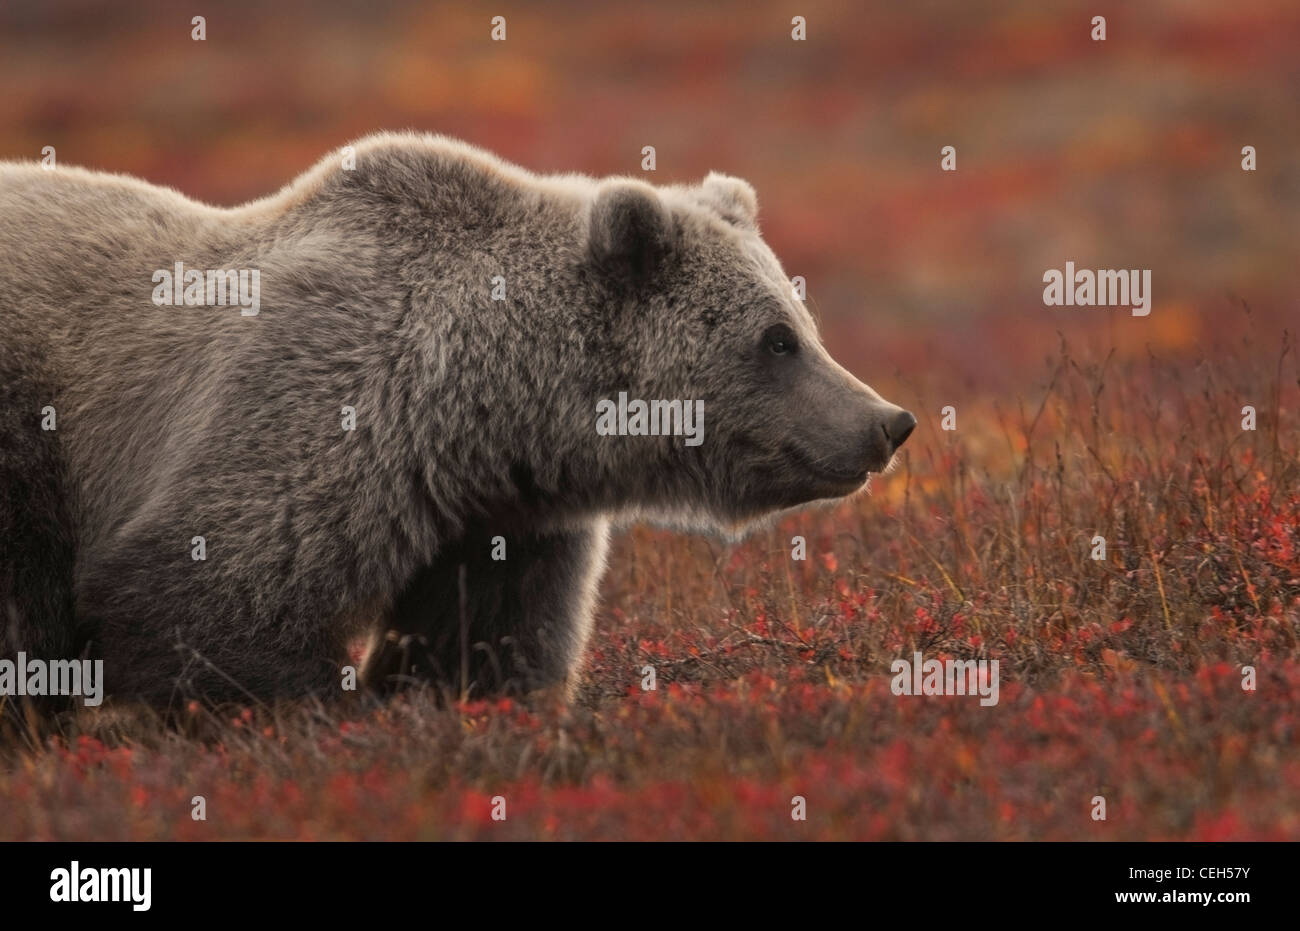 Grizzly (Ursus arctos) bear, forages in the fall tundra, Denali National Park, Alaska - Stock Image